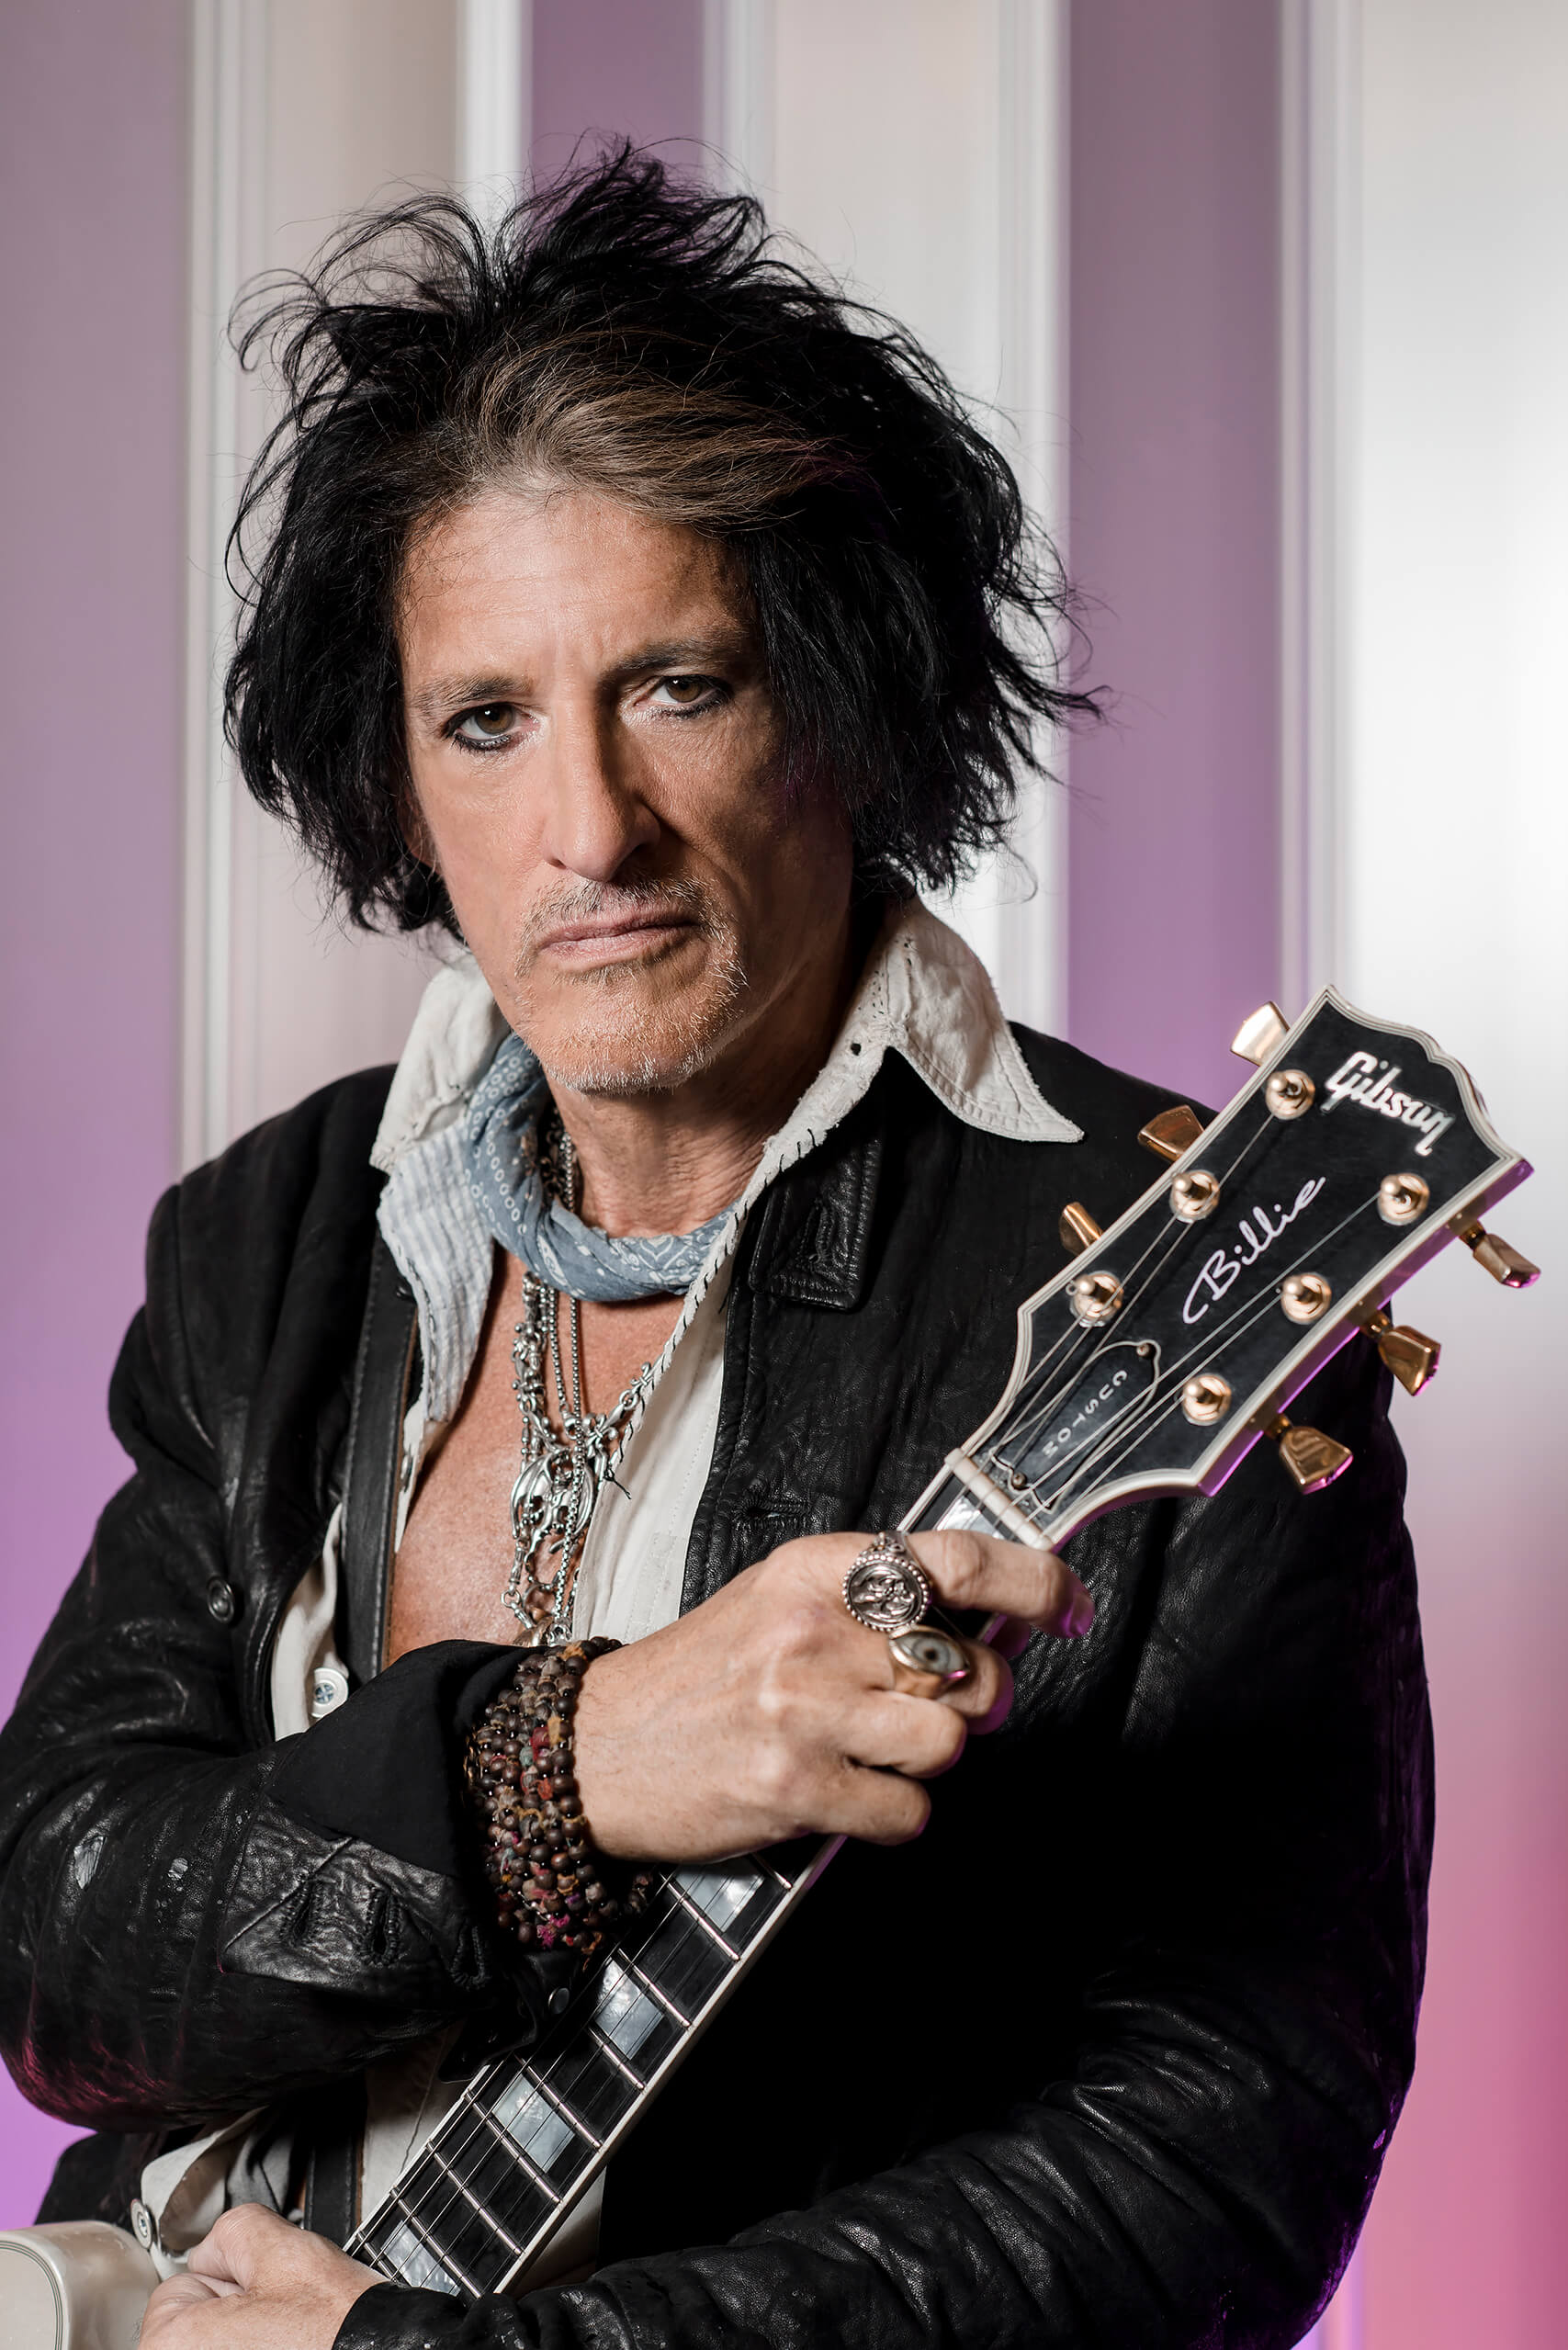 The Guitar Interview Behind The Scenes In Las Vegas With Aerosmith Stars Joe Perry And Brad Whitford Guitar Com All Things Guitar He played for the san francisco 49ers from 1948 to 1960, the baltimore colts from 1961 to 1962. aerosmith stars joe perry